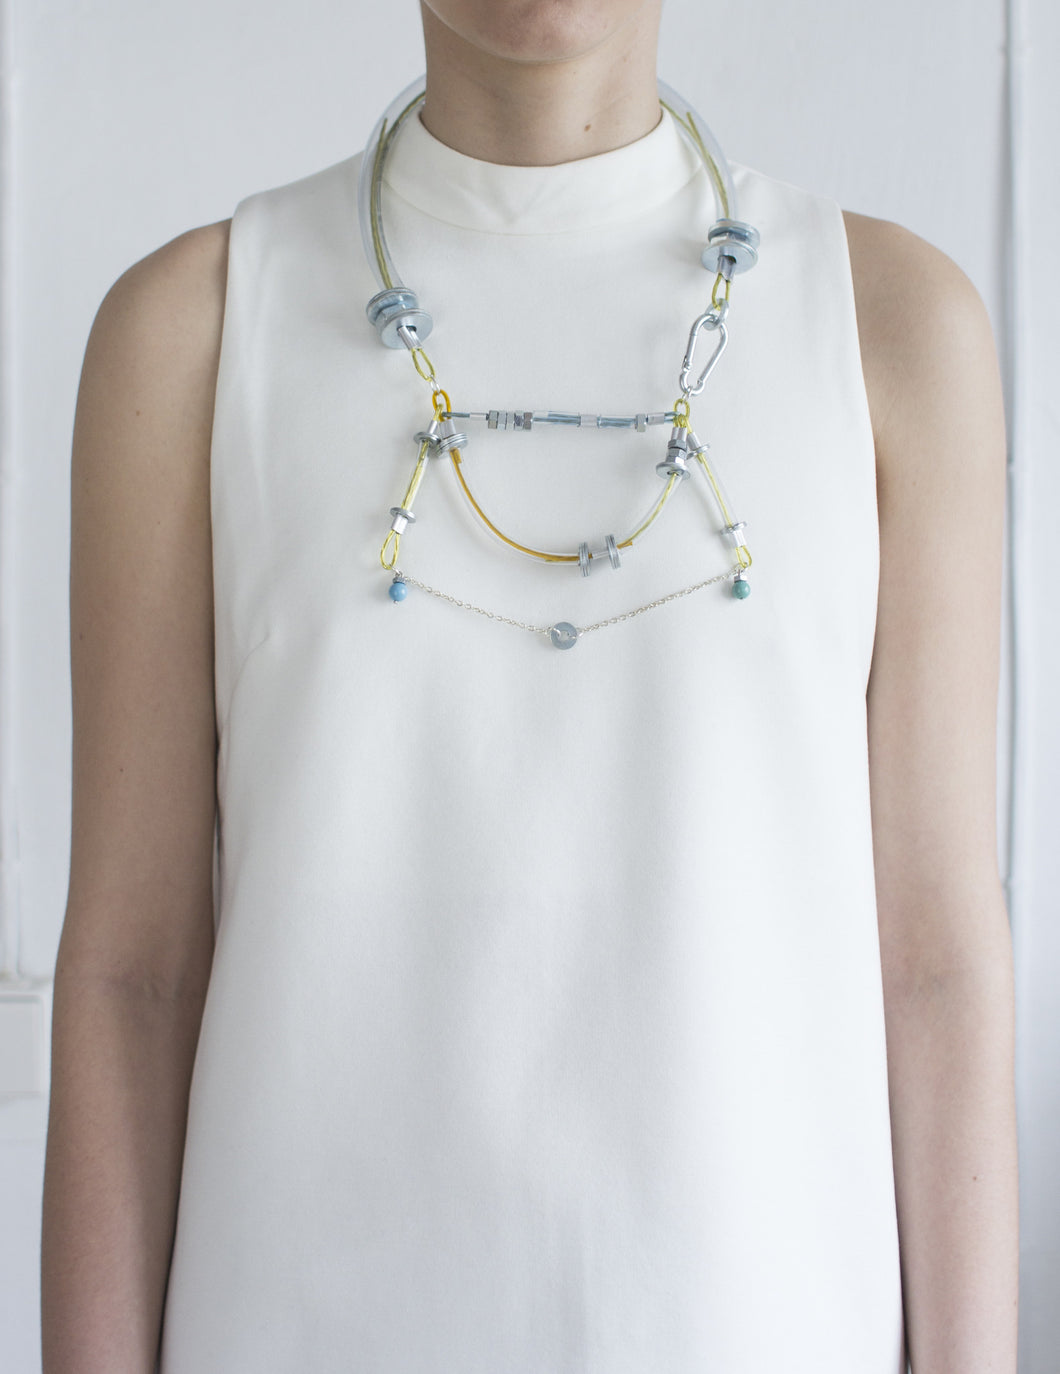 Industrial design necklace with metal details and swarovski pearls